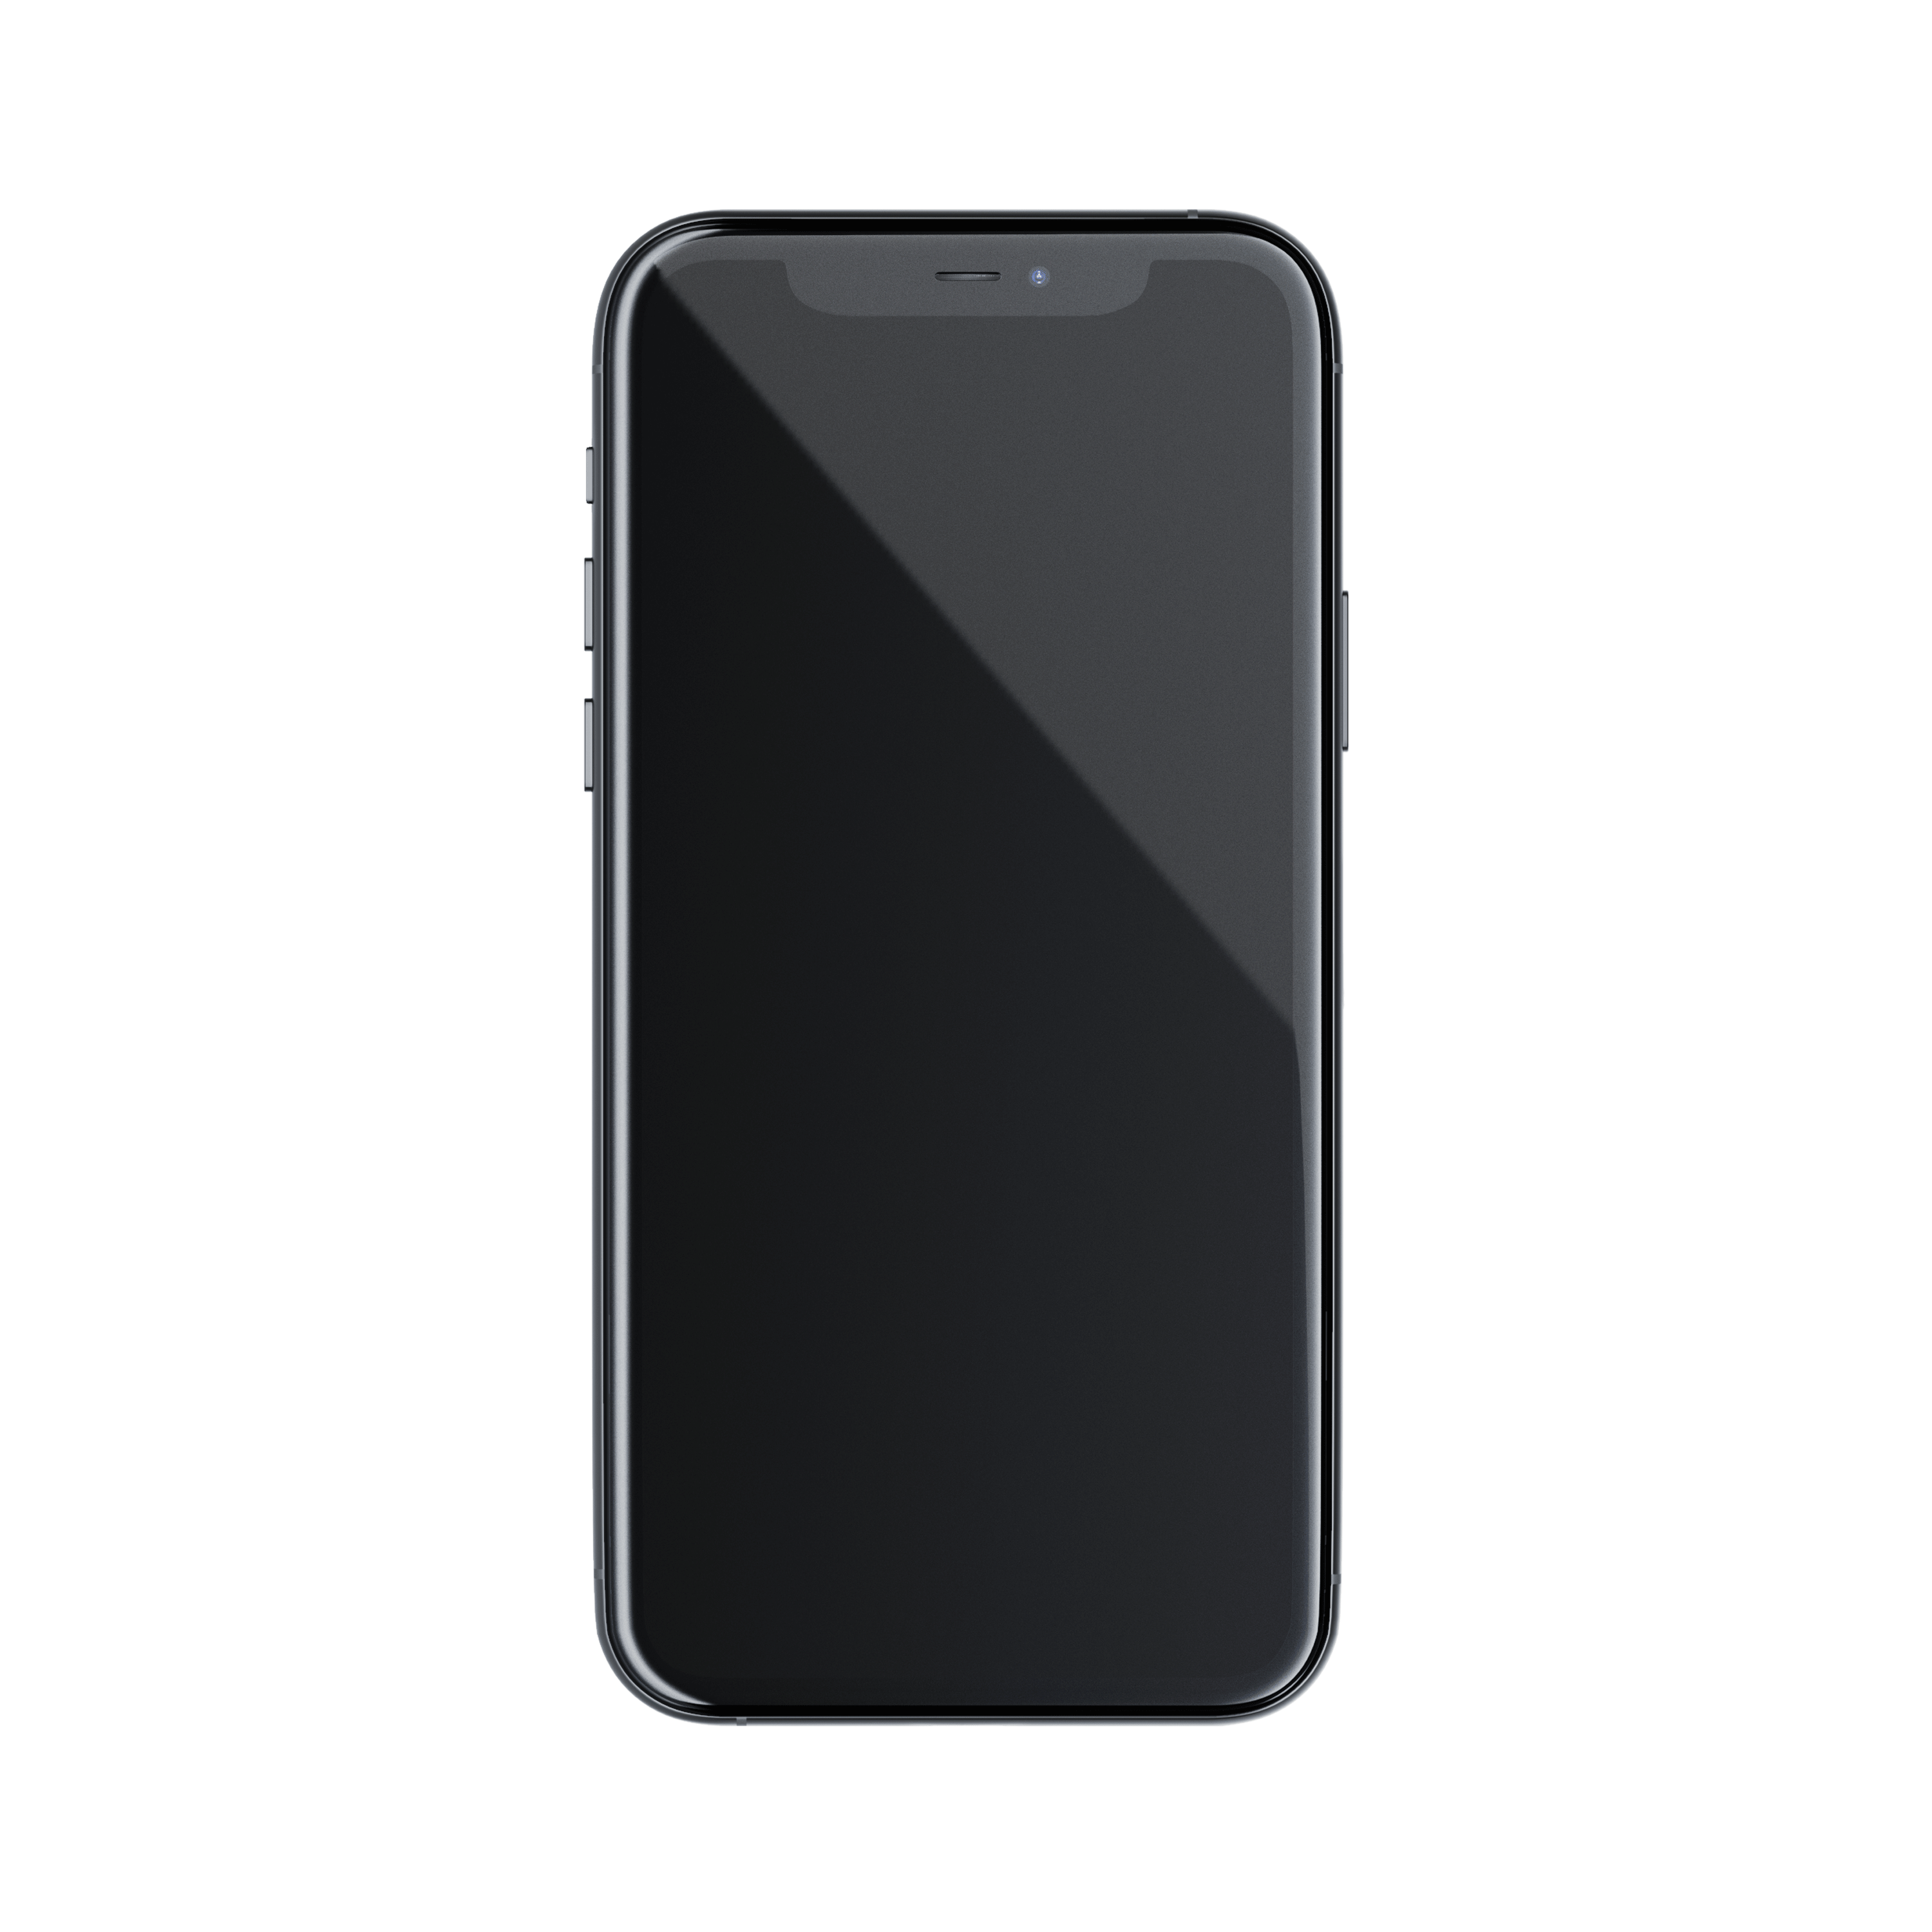 Image of an iphone you can scroll to preview the website designs